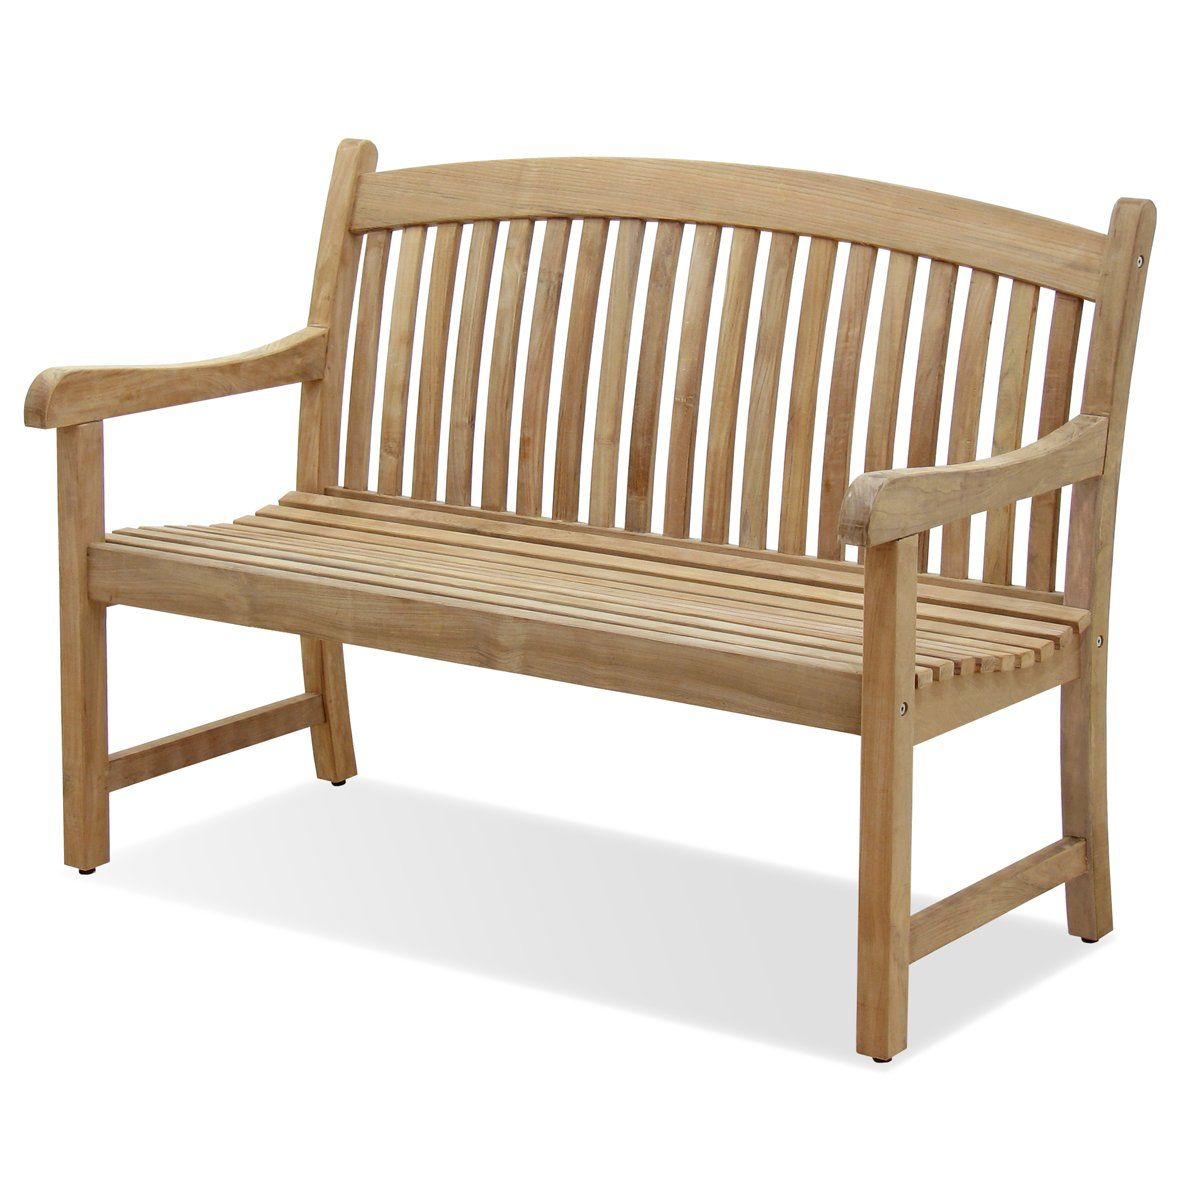 Amazon Com Amazonia Teak Newcastle Teak Bench Outdoor Benches Patio Lawn Garden Teak Garden Bench Teak Bench Teak Patio Furniture